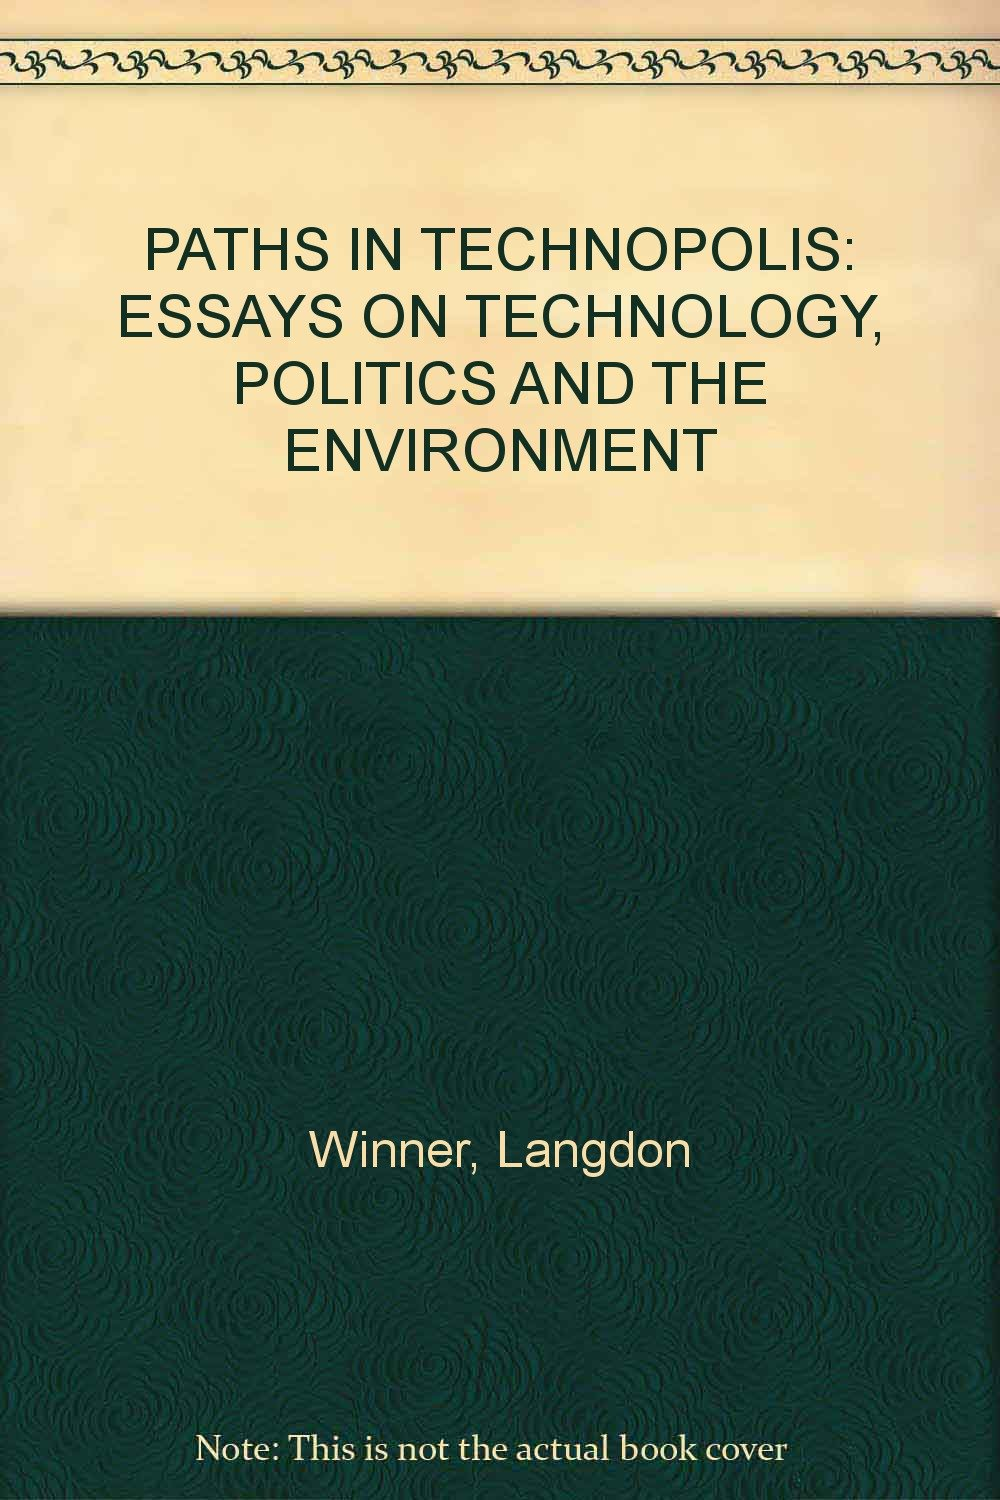 High School Essay Paths In Technopolis Essays On Technology Politics And The Environment  Langdon Winner Amazoncom Books High School Vs College Essay also Critical Analysis Essay Example Paper Paths In Technopolis Essays On Technology Politics And The  How To Learn English Essay